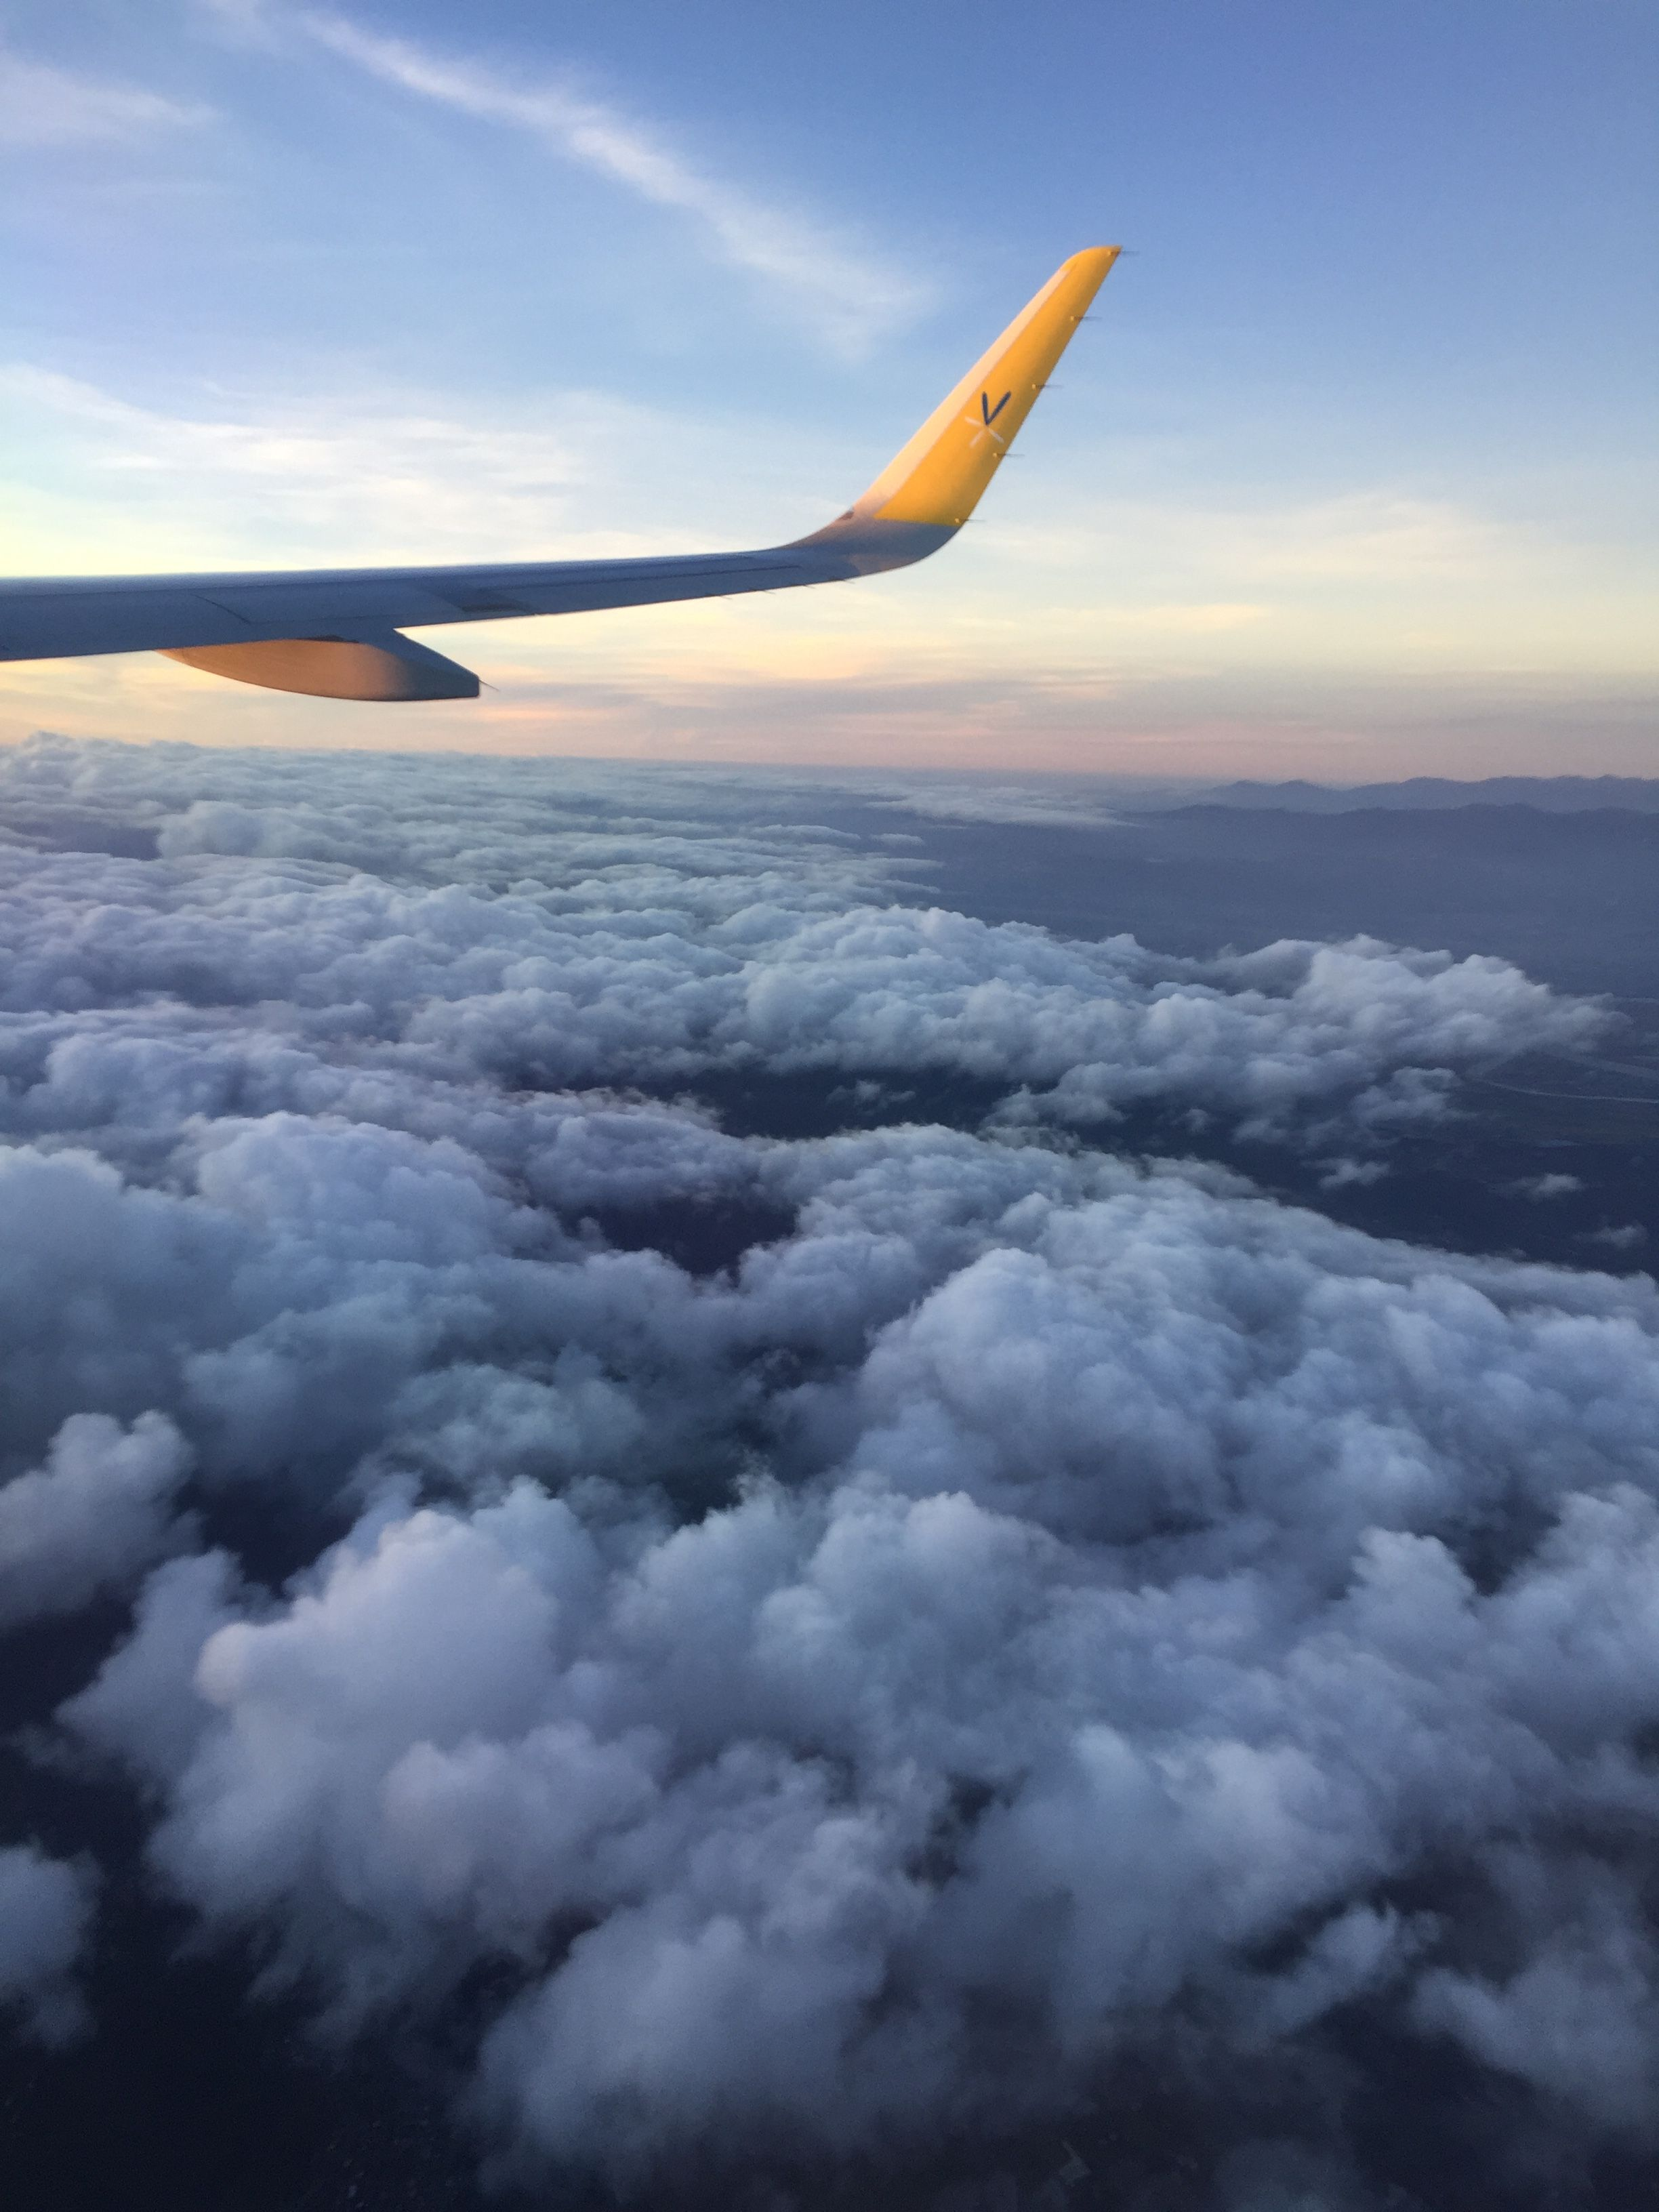 Pin by debby on iphone wallpapers Airplane view, Iphone